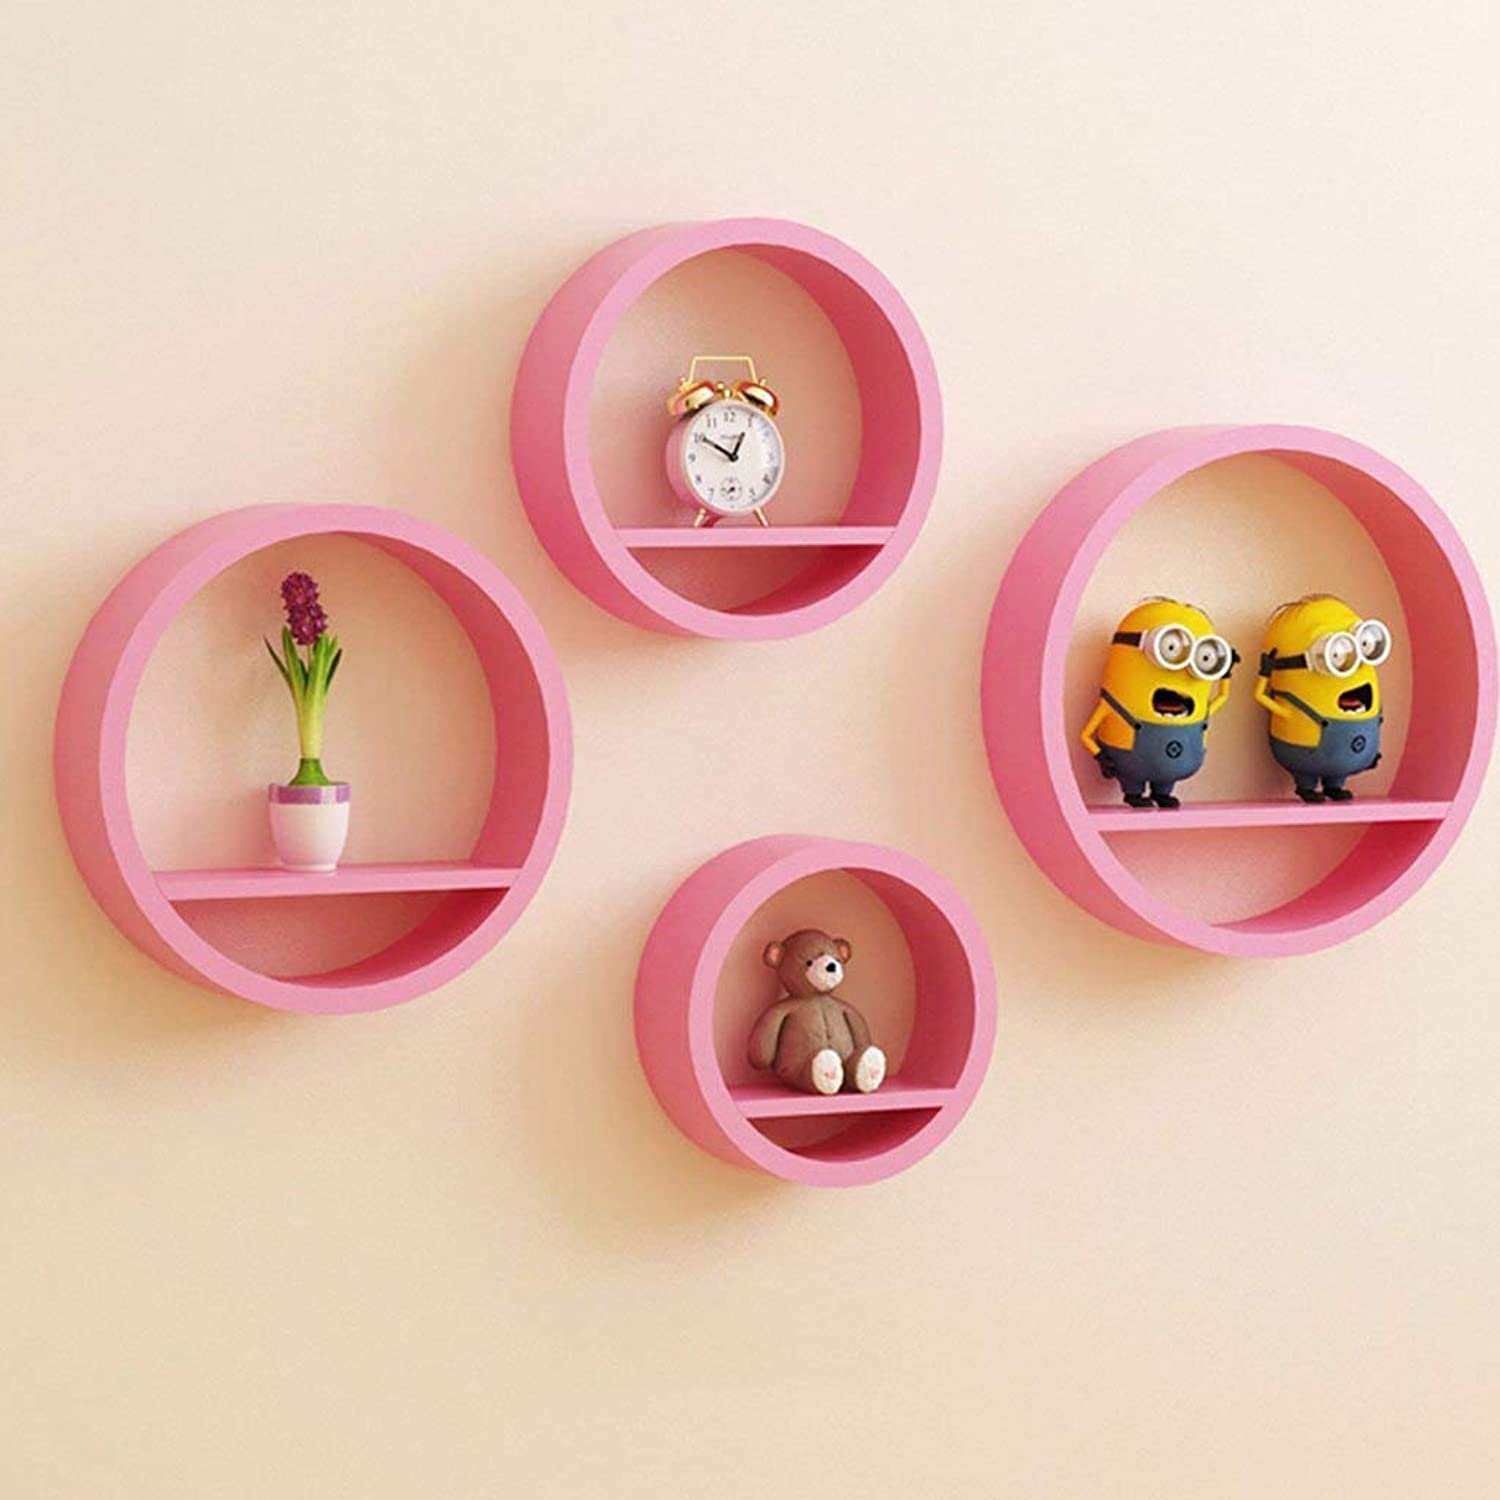 A Set of Four Round Wall Shelves, Living Room Wall Dining Room Wall Hanging Shelf,Save Space,Pink